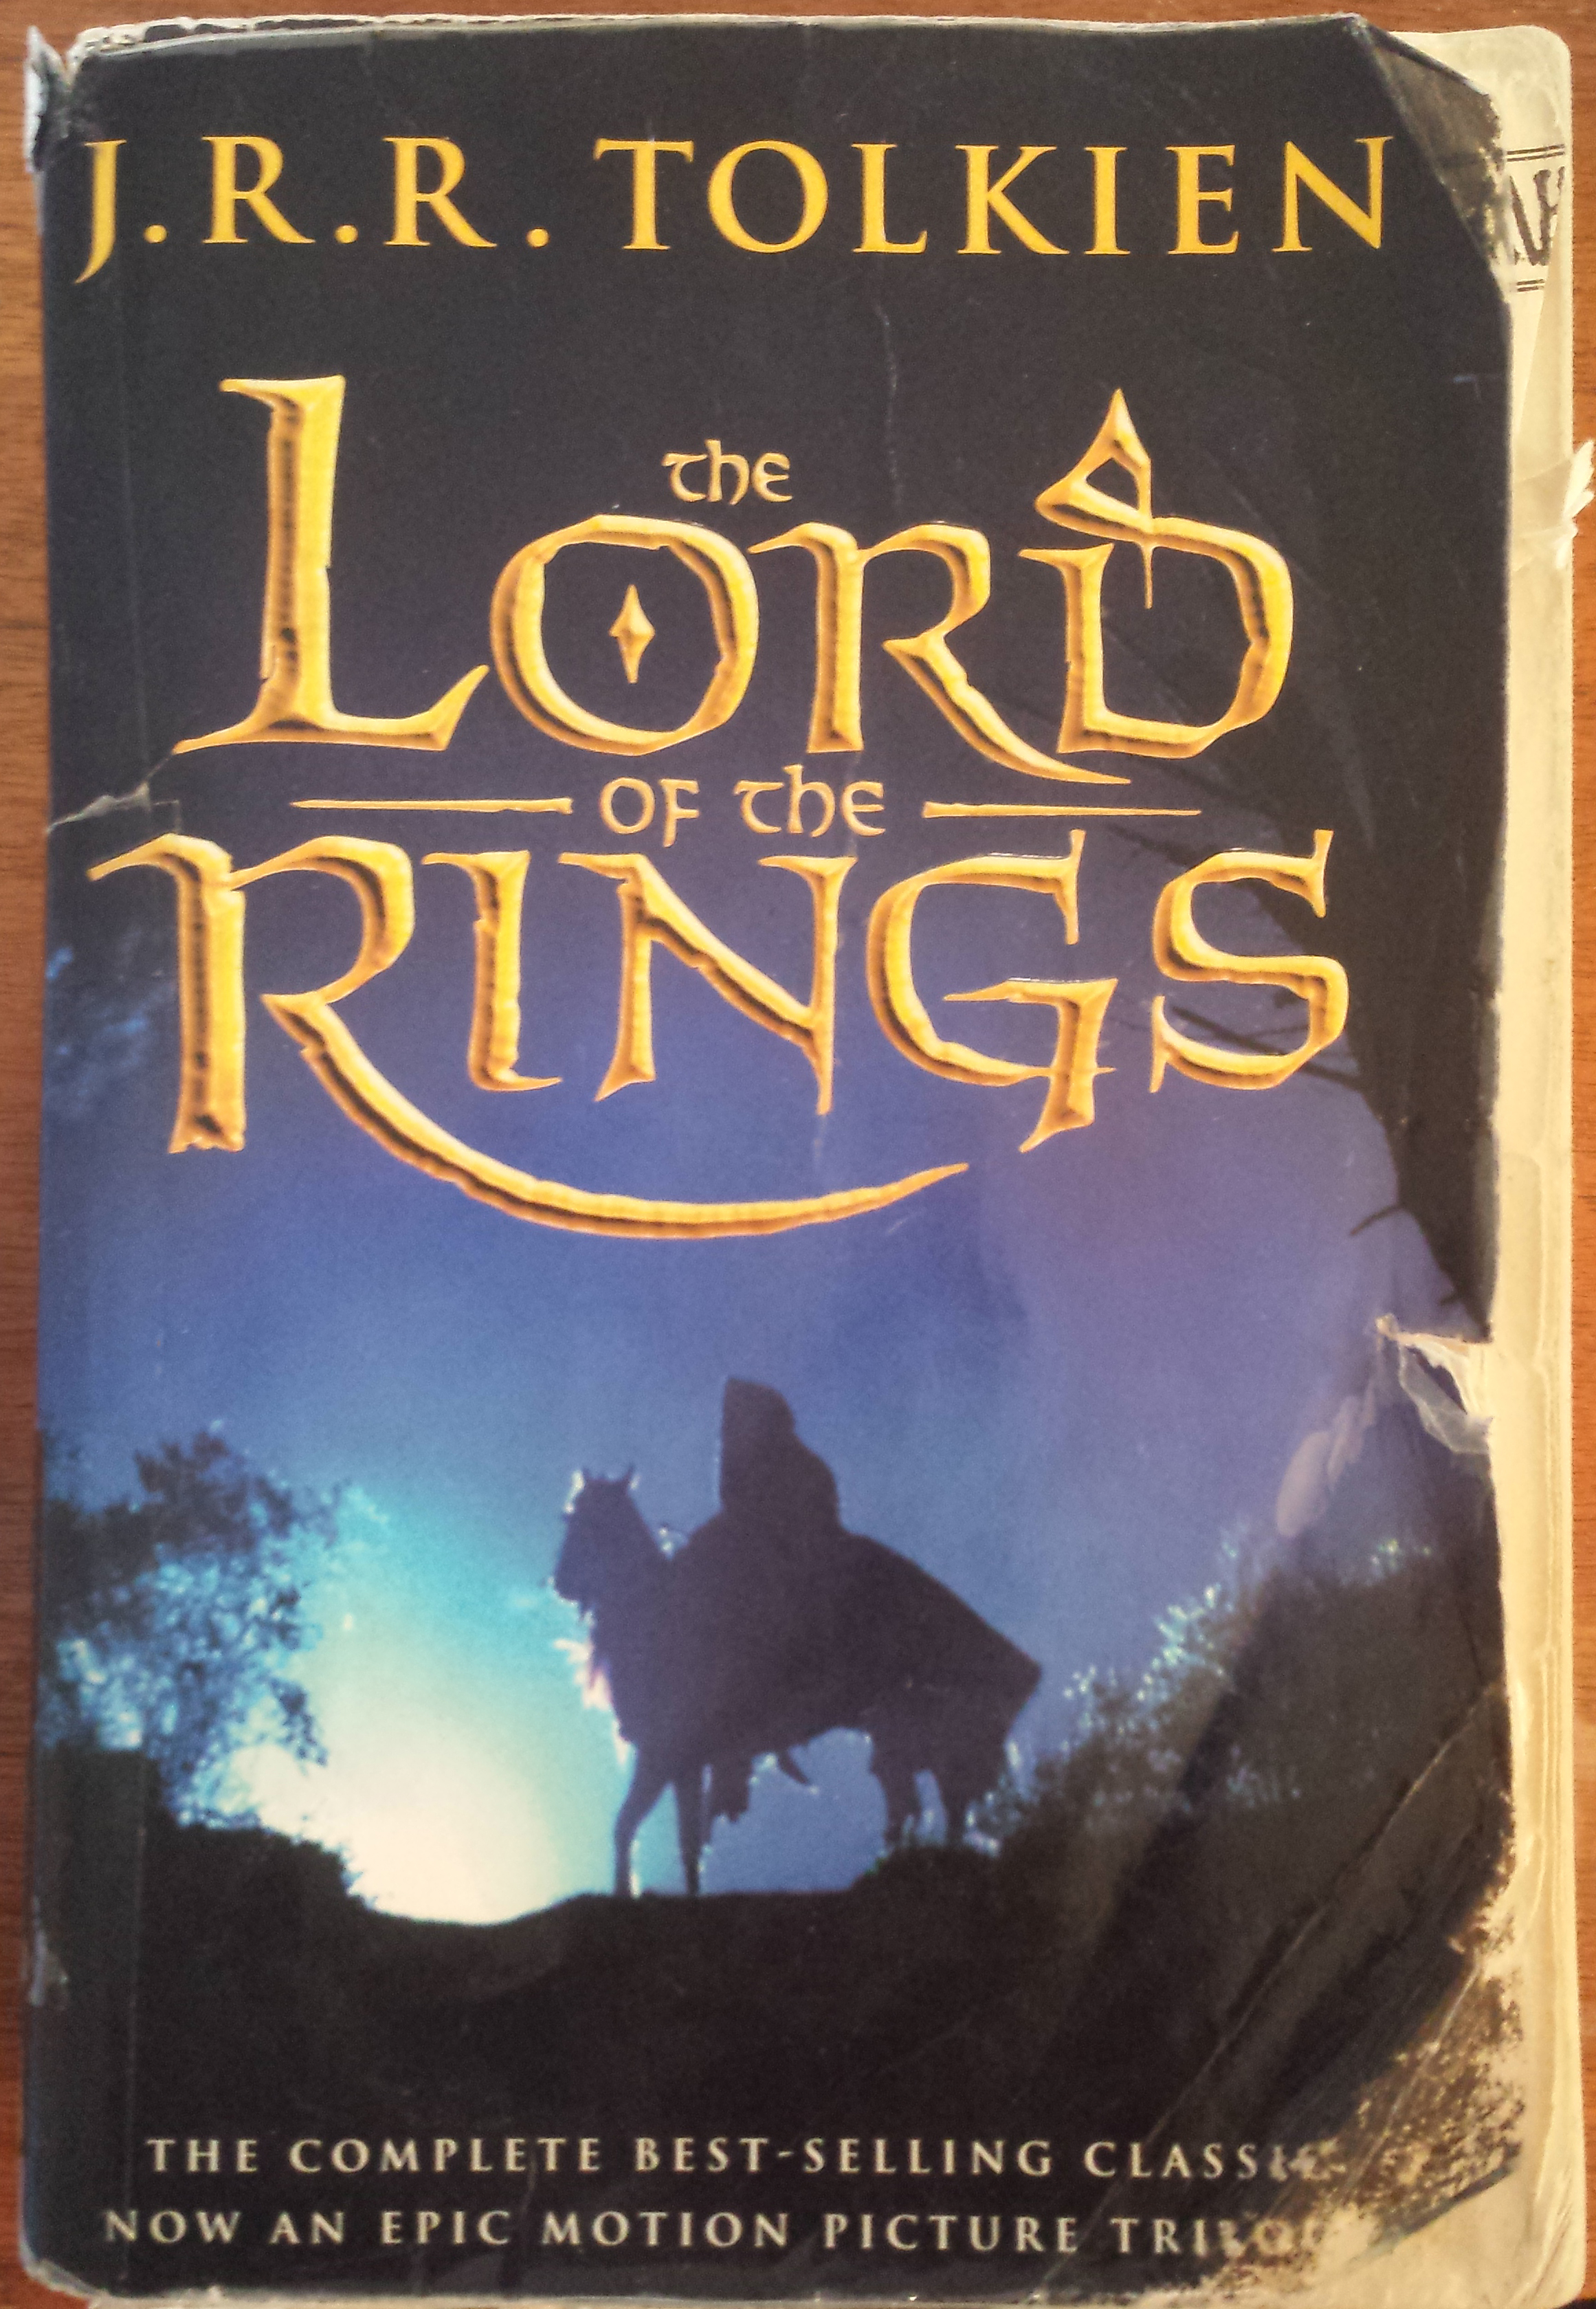 an analysis of the novel the lord of the rings by jrr tolkien In the years between the release of the the hobbit and the first lord of the rings novel, jrr tolkien wrote a long poem that hasn't been republished in according to the guardian, the poem was based on a celtic legend and features an early version of elven queen galadriel, who was officially.